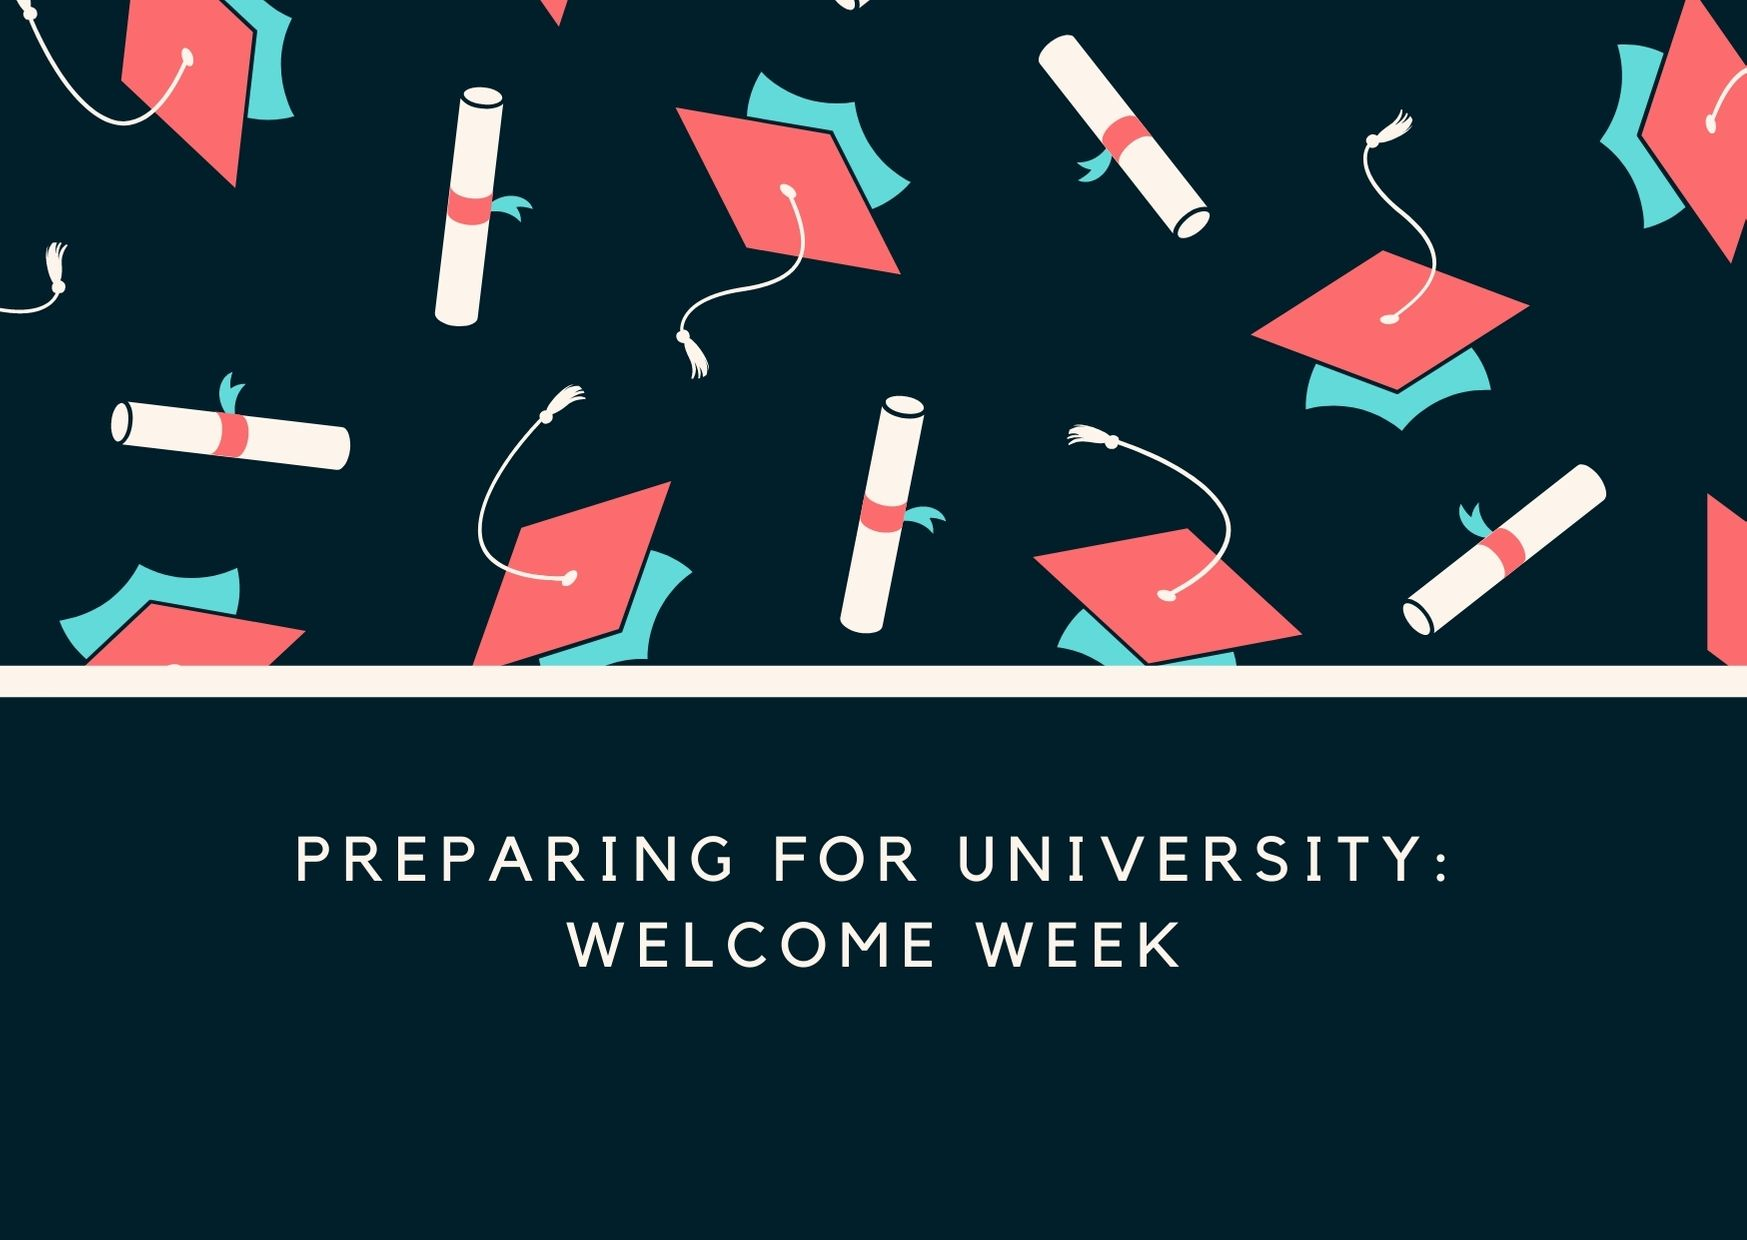 Preparing for University: Welcome Week